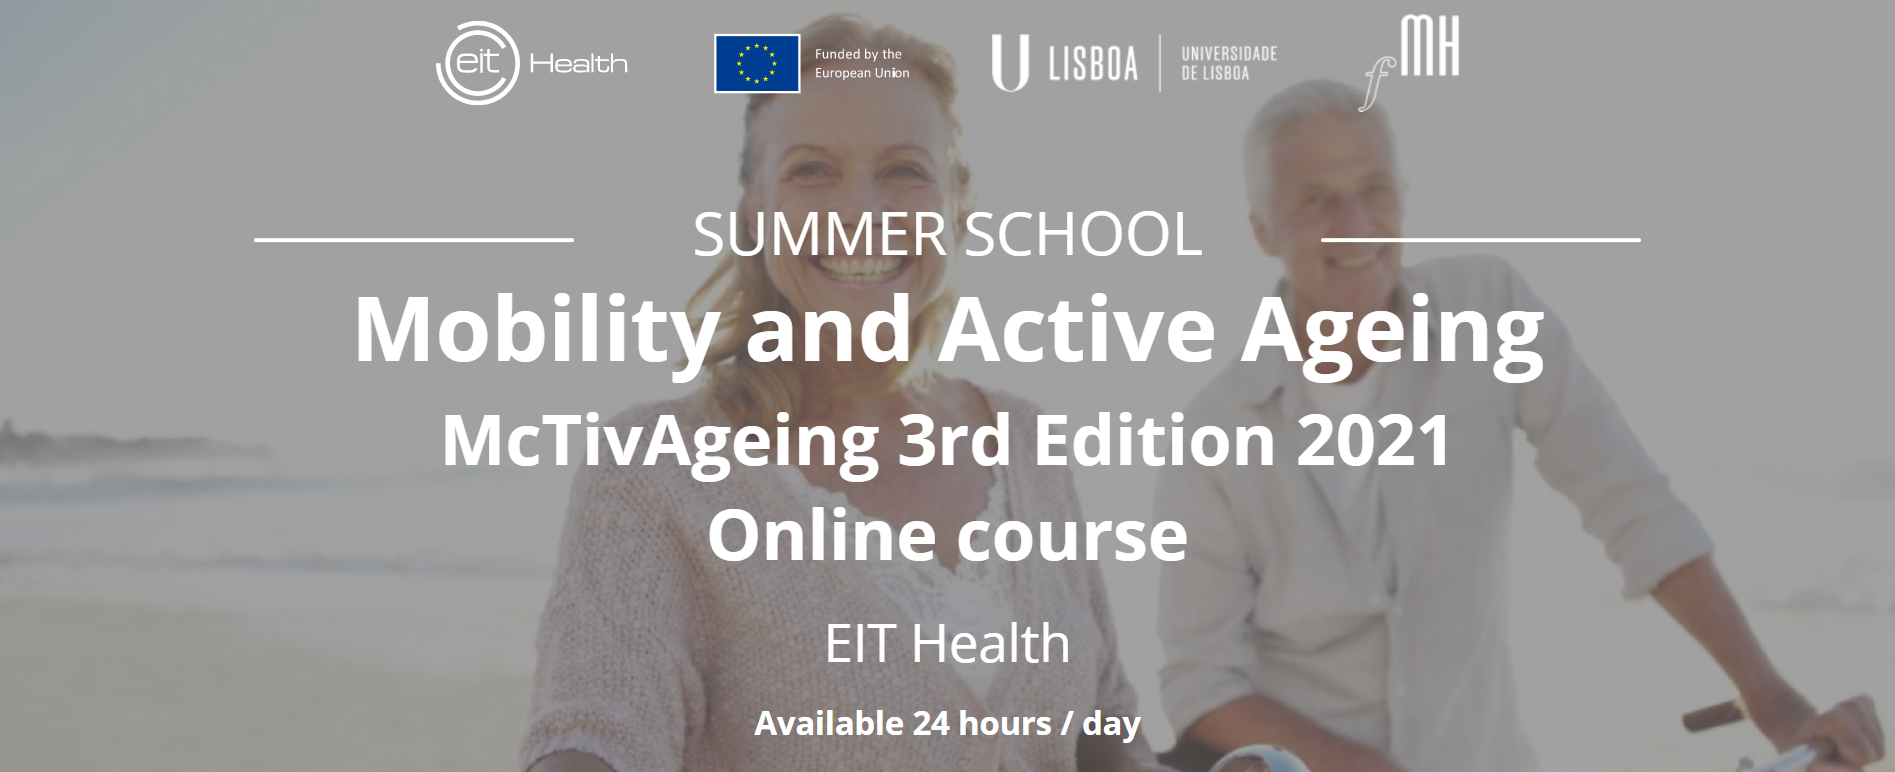 Summer School in Mobility and Active Ageing 2021